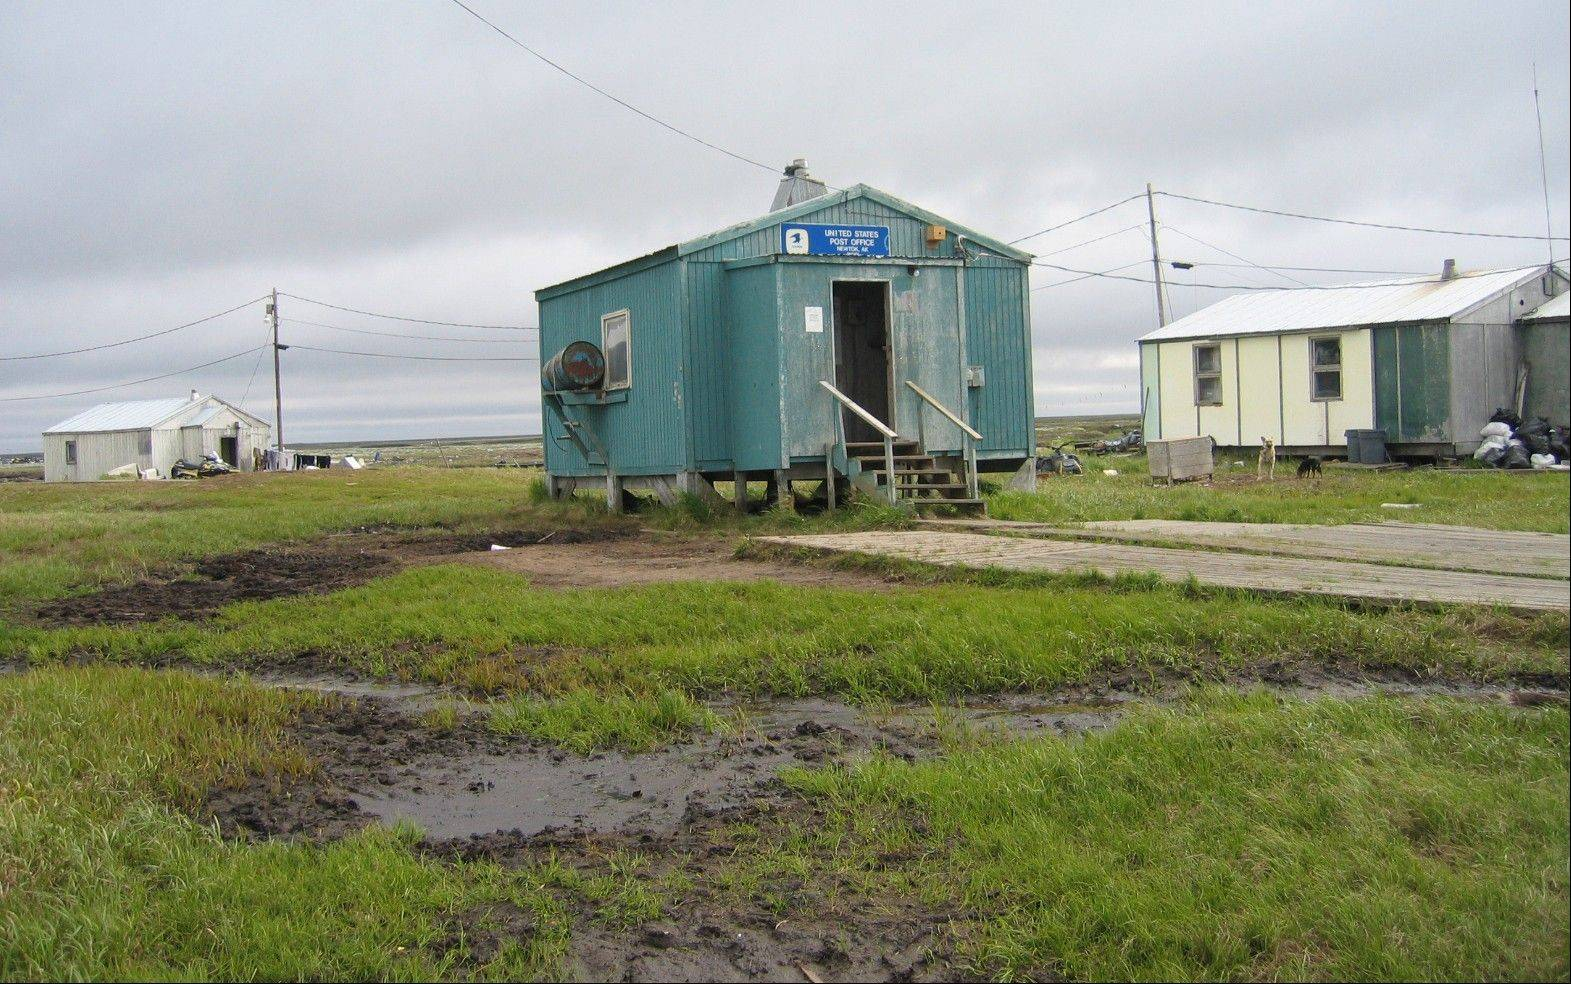 The flood-prone village of Newtok near Alaska's storm-battered coast is running out of time as coastal erosion creeps ever closer to the Yup'ik Eskimo community.